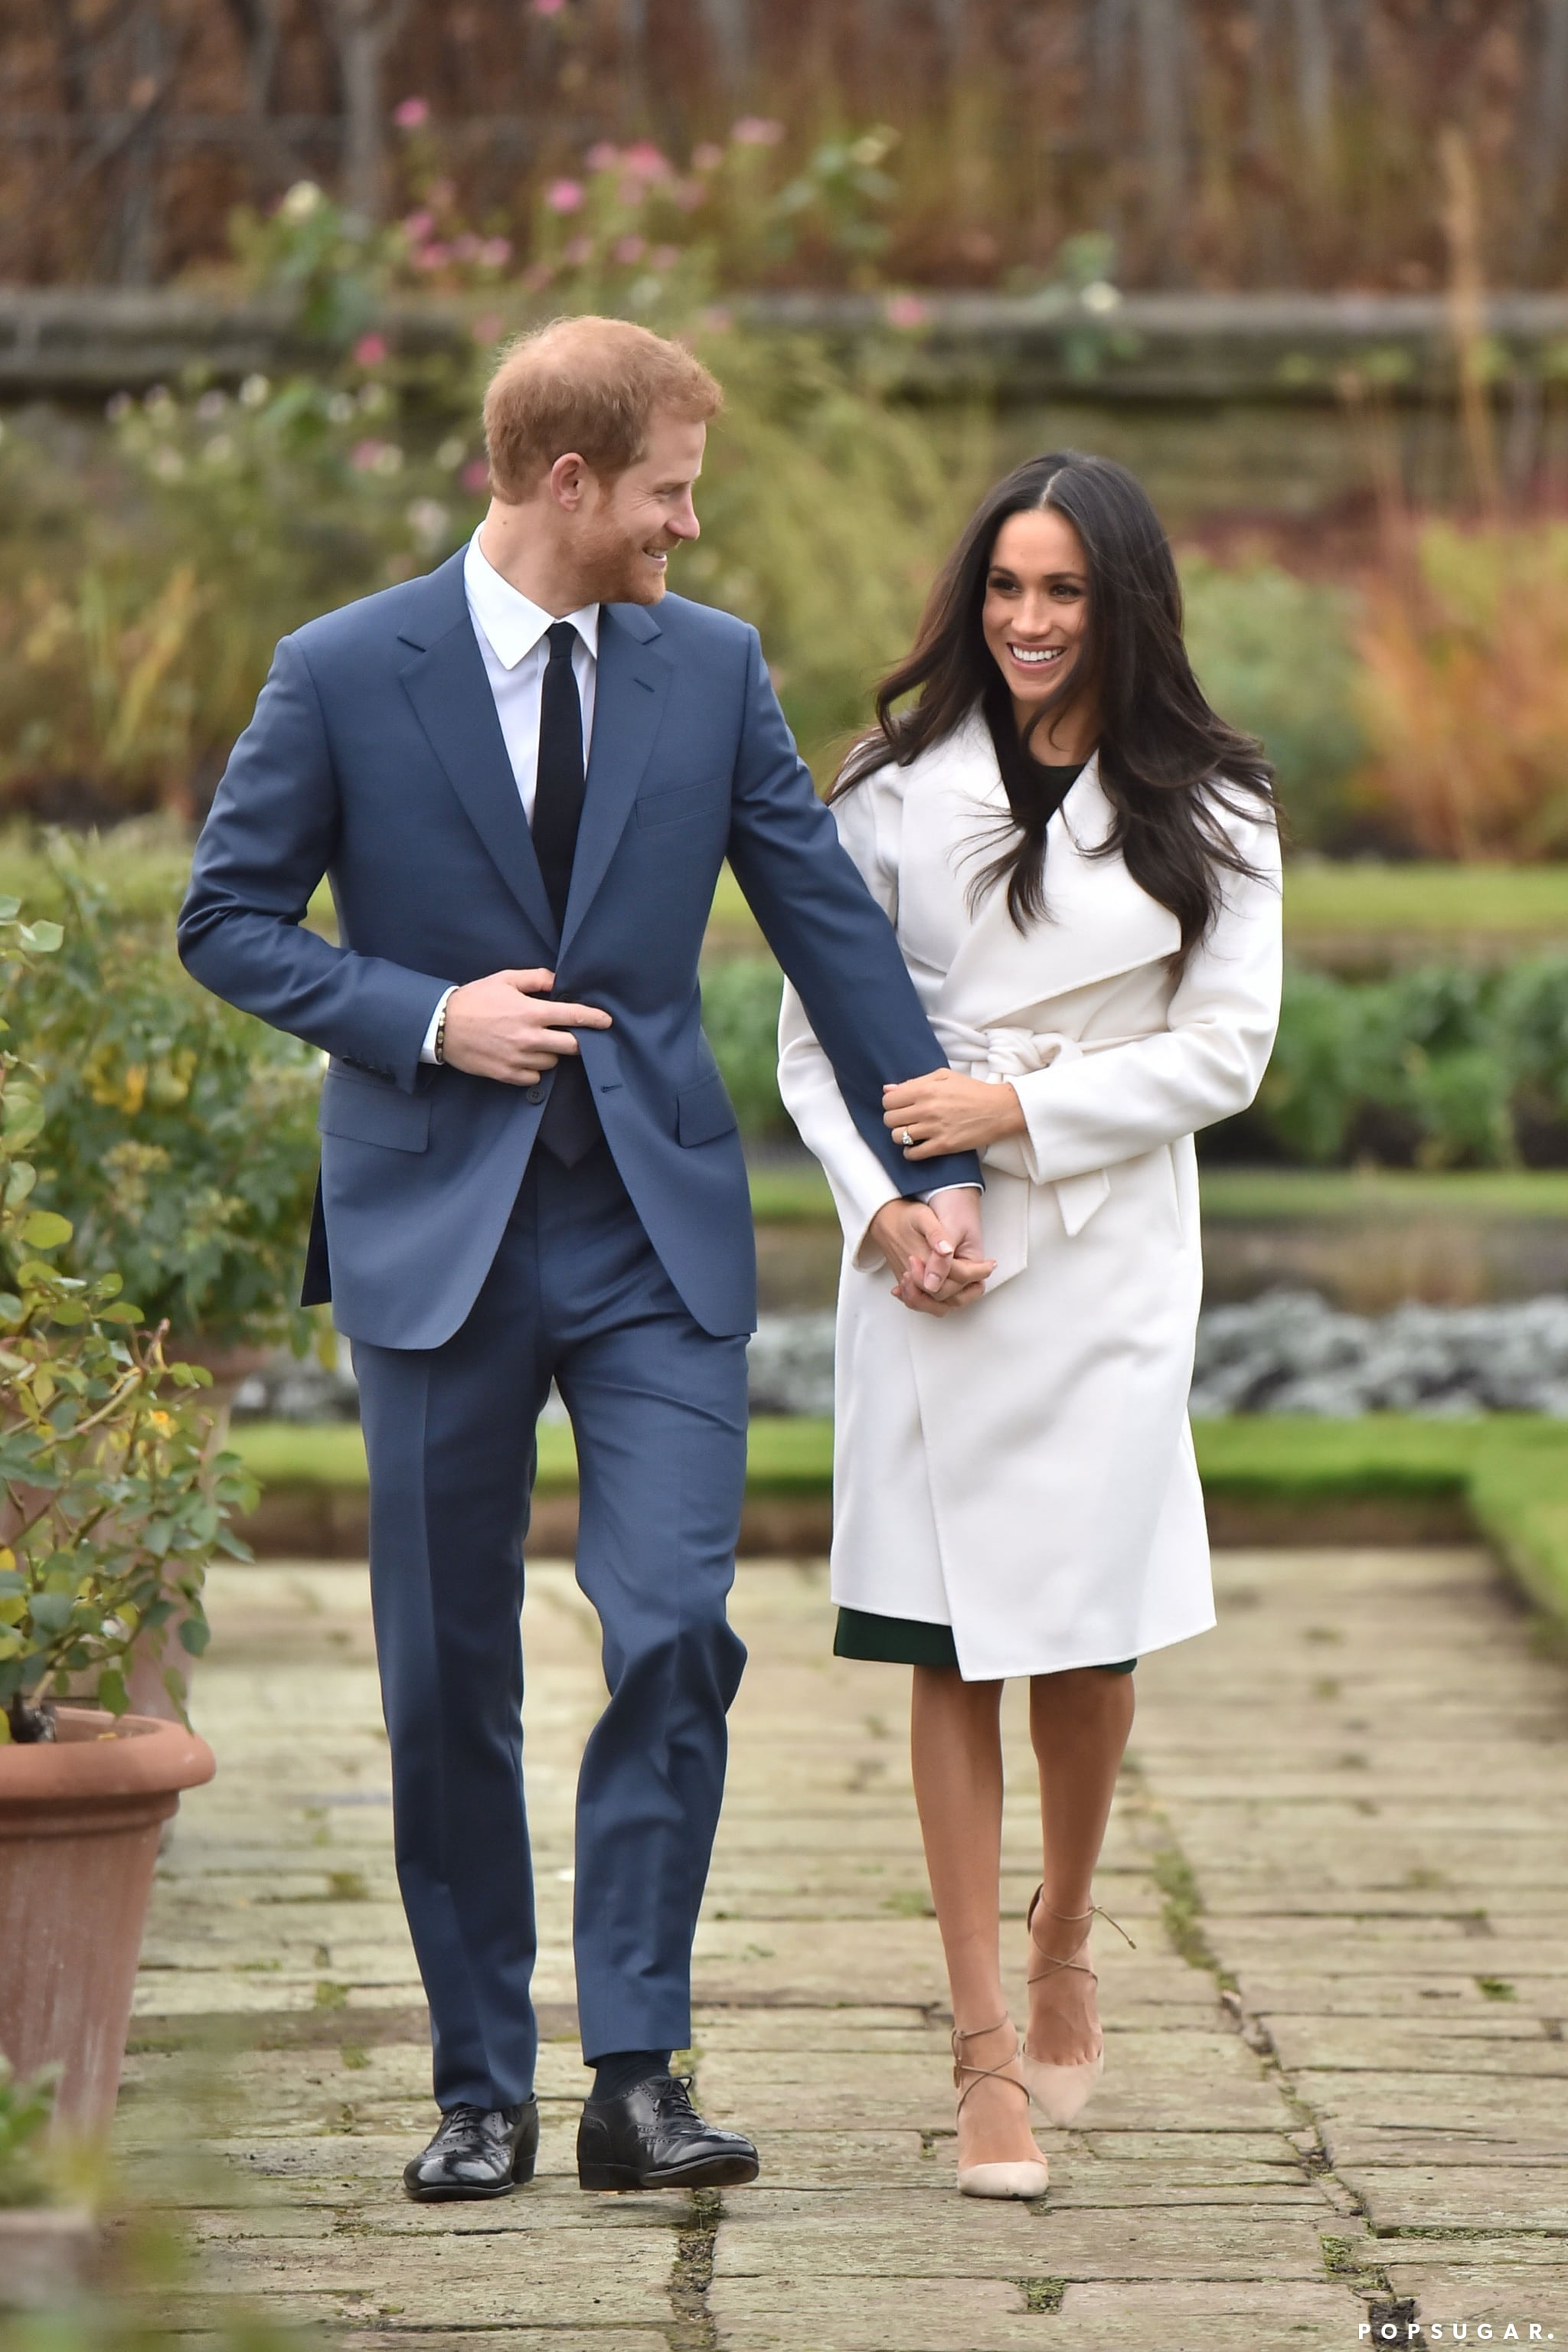 Meghan And Harry Leaving The Royal Family Details Popsugar Celebrity,Best Way To Light A Room